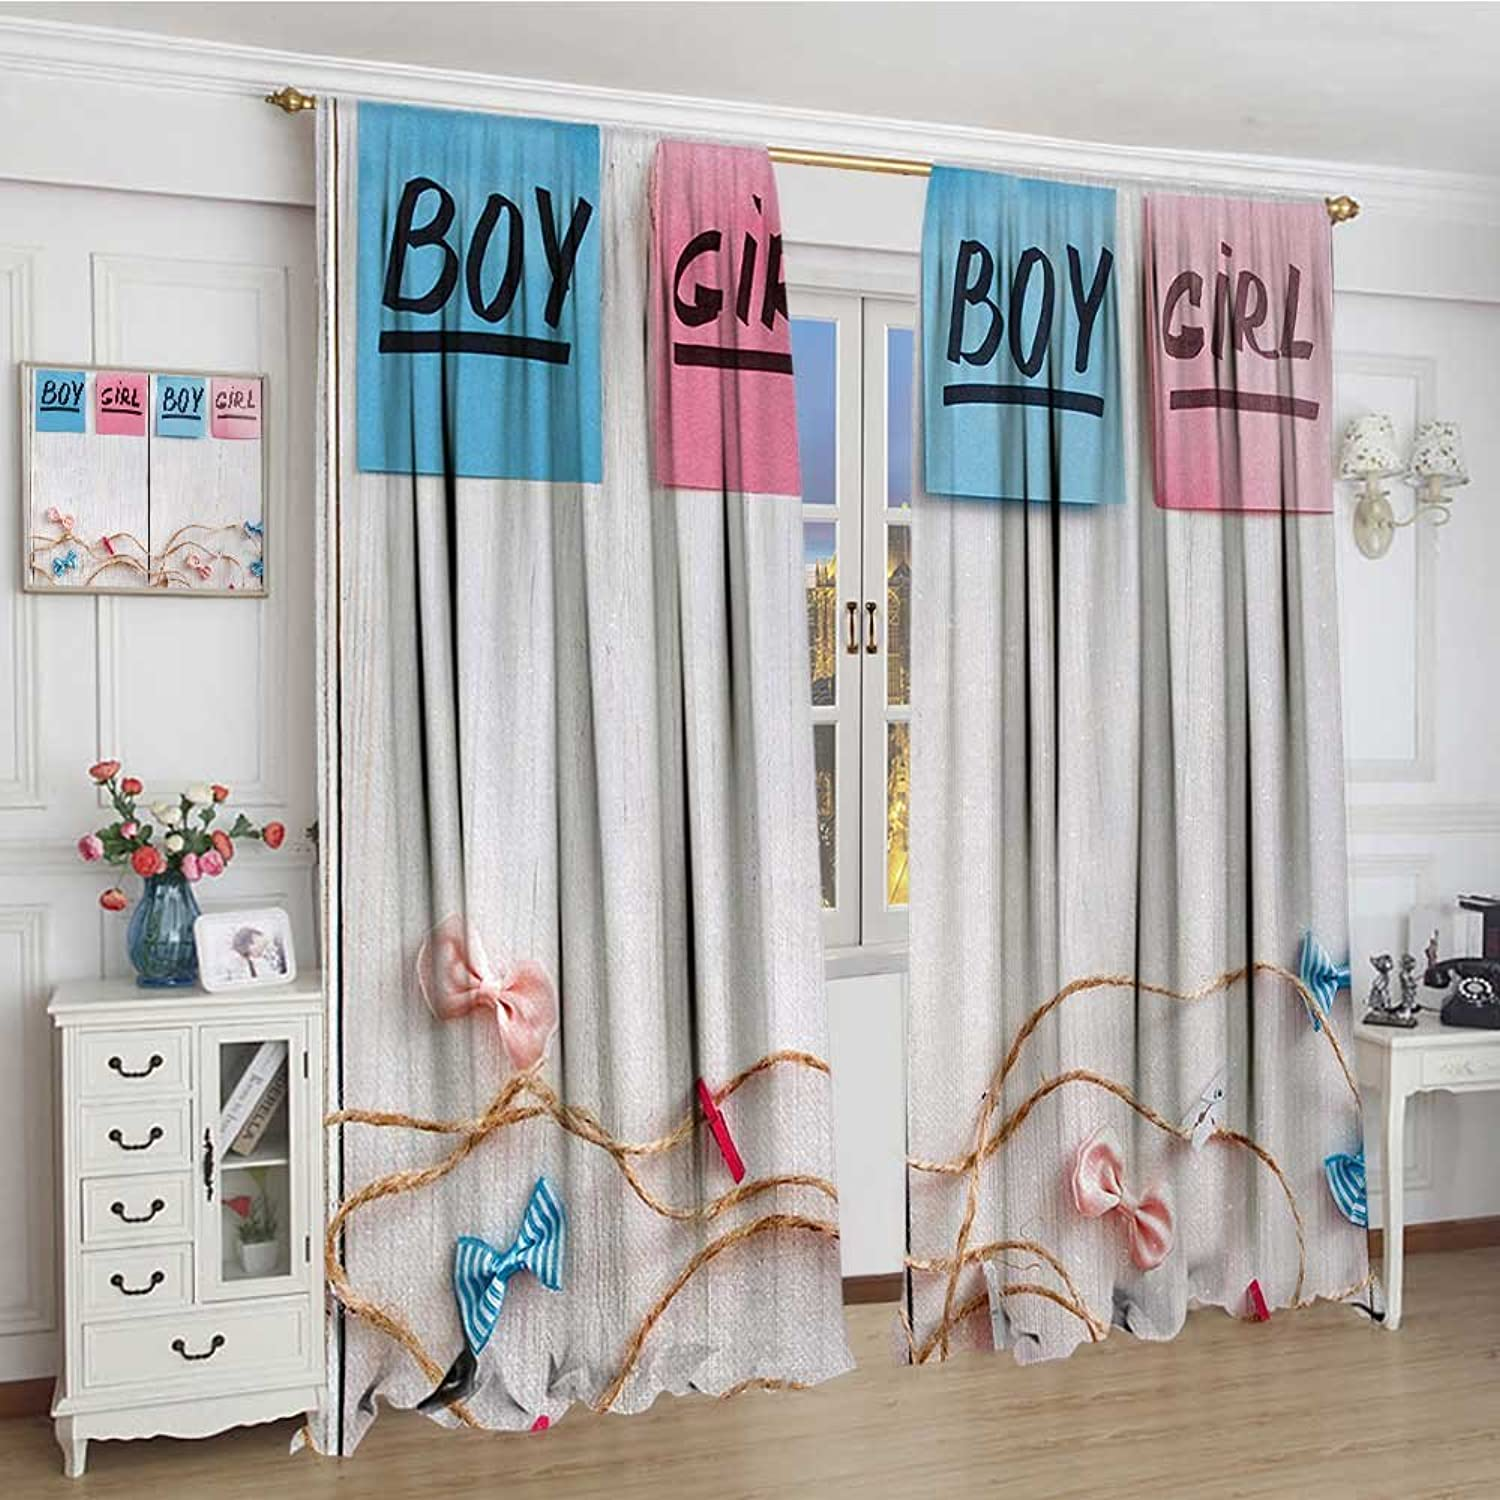 Smallbeefly Gender Reveal Widened Room Darkening Curtains colorful Stickers Garland and Ribbons Greetings on Wooden Seem Background Drapes for Living Room 120 x84  Multicolor